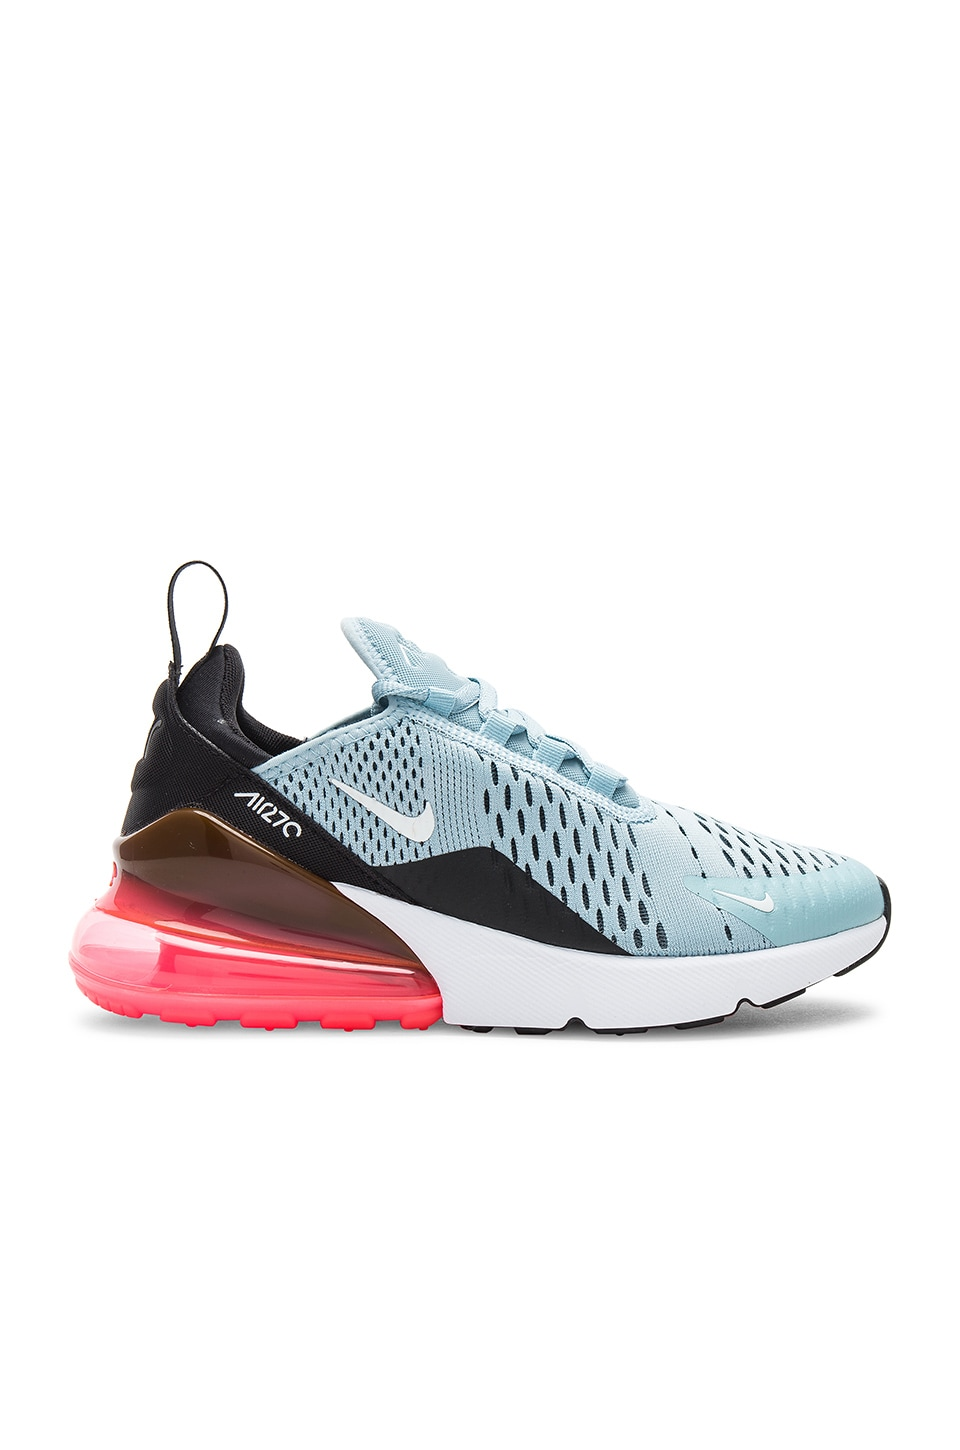 air max 279 hot punch